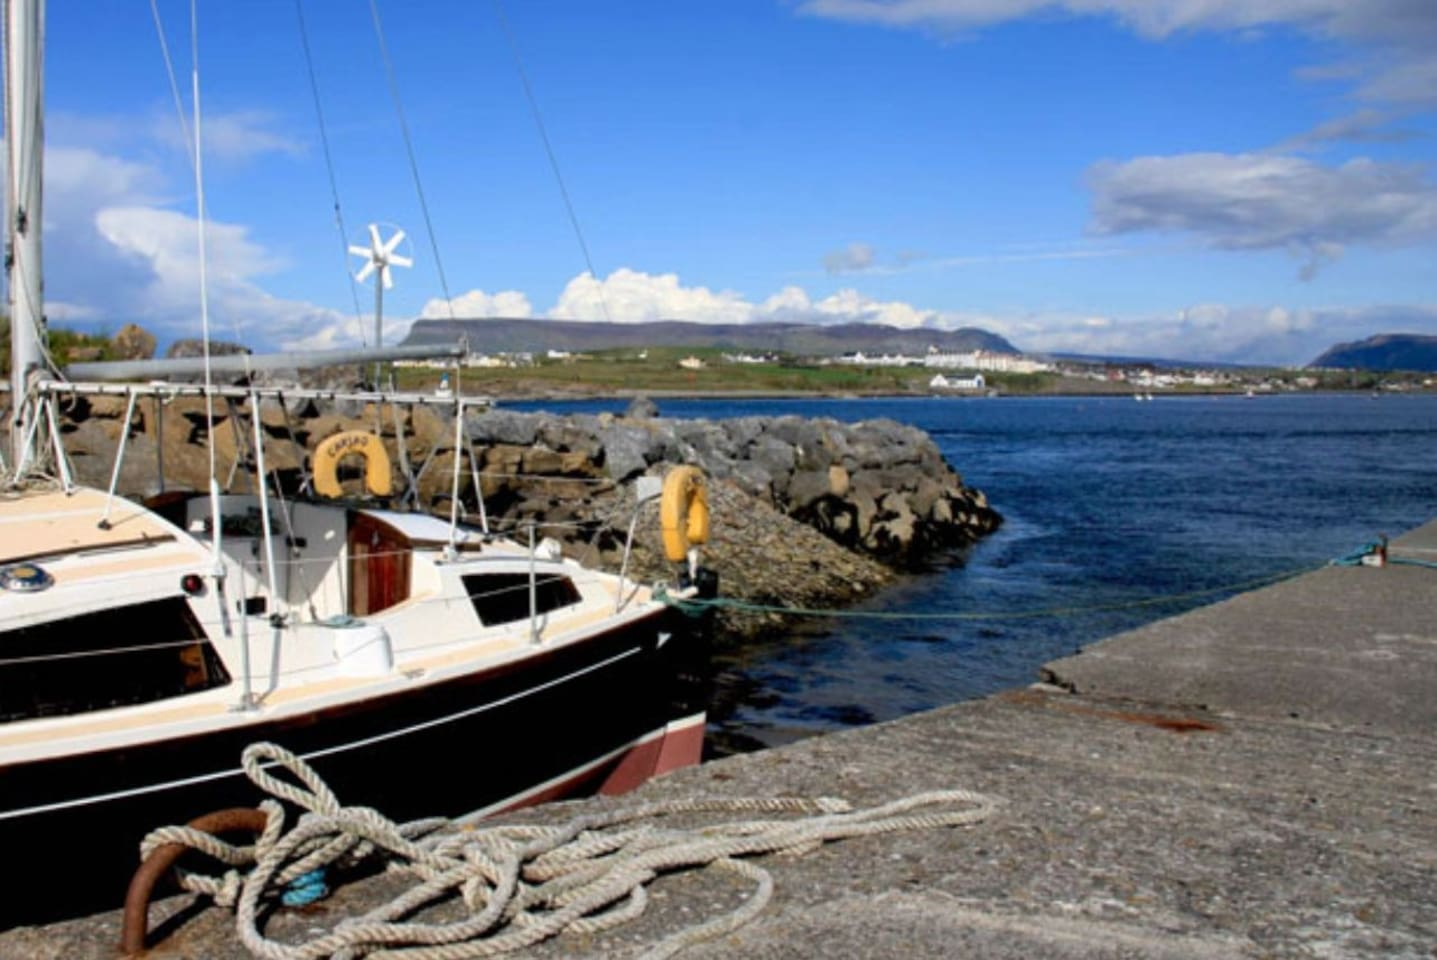 View from the pier to the mainland at Rosses Point